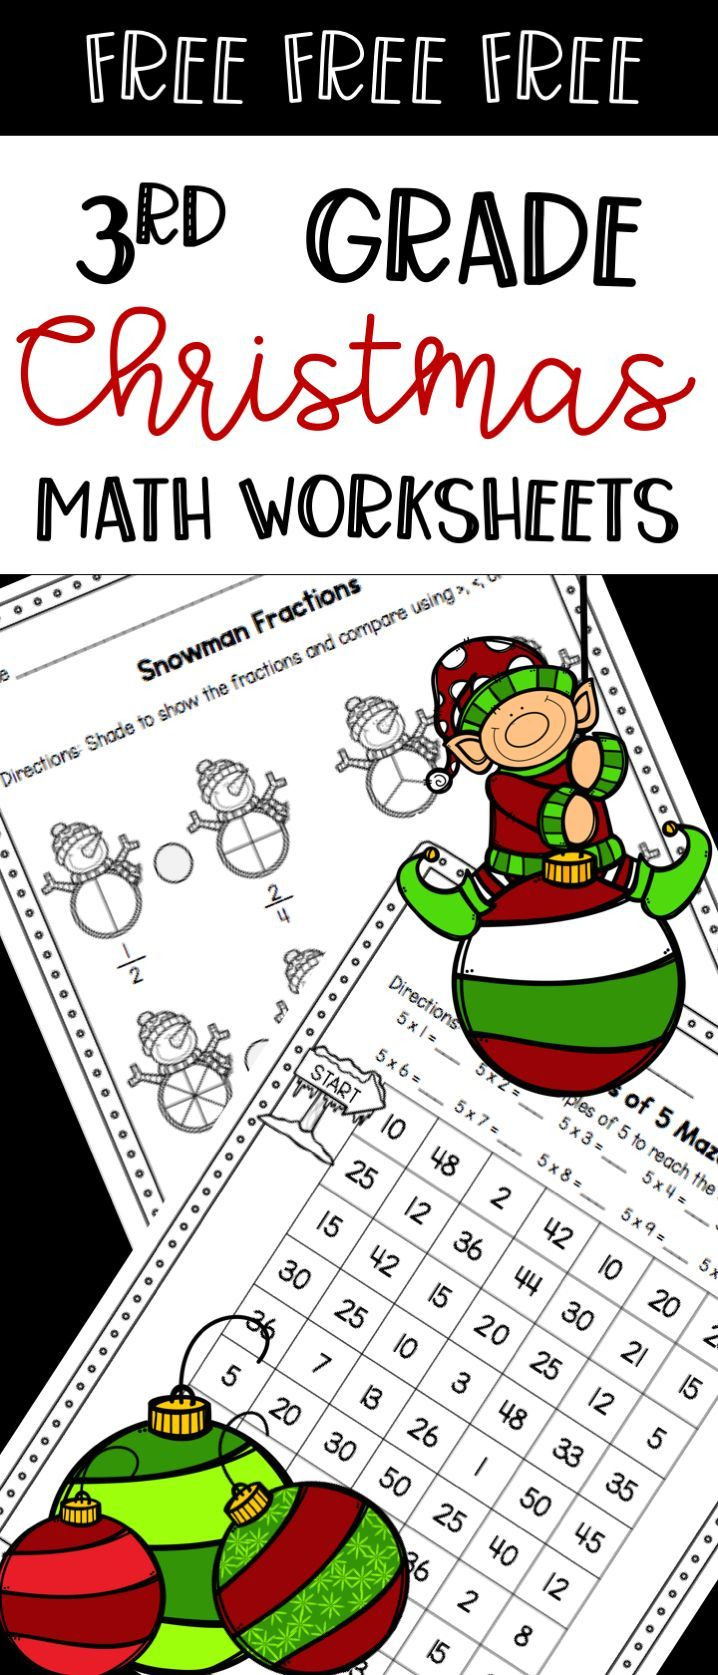 Christmas Math Worksheets 3rd Grade Christmas Worksheets Math Practice Pages Free Sample